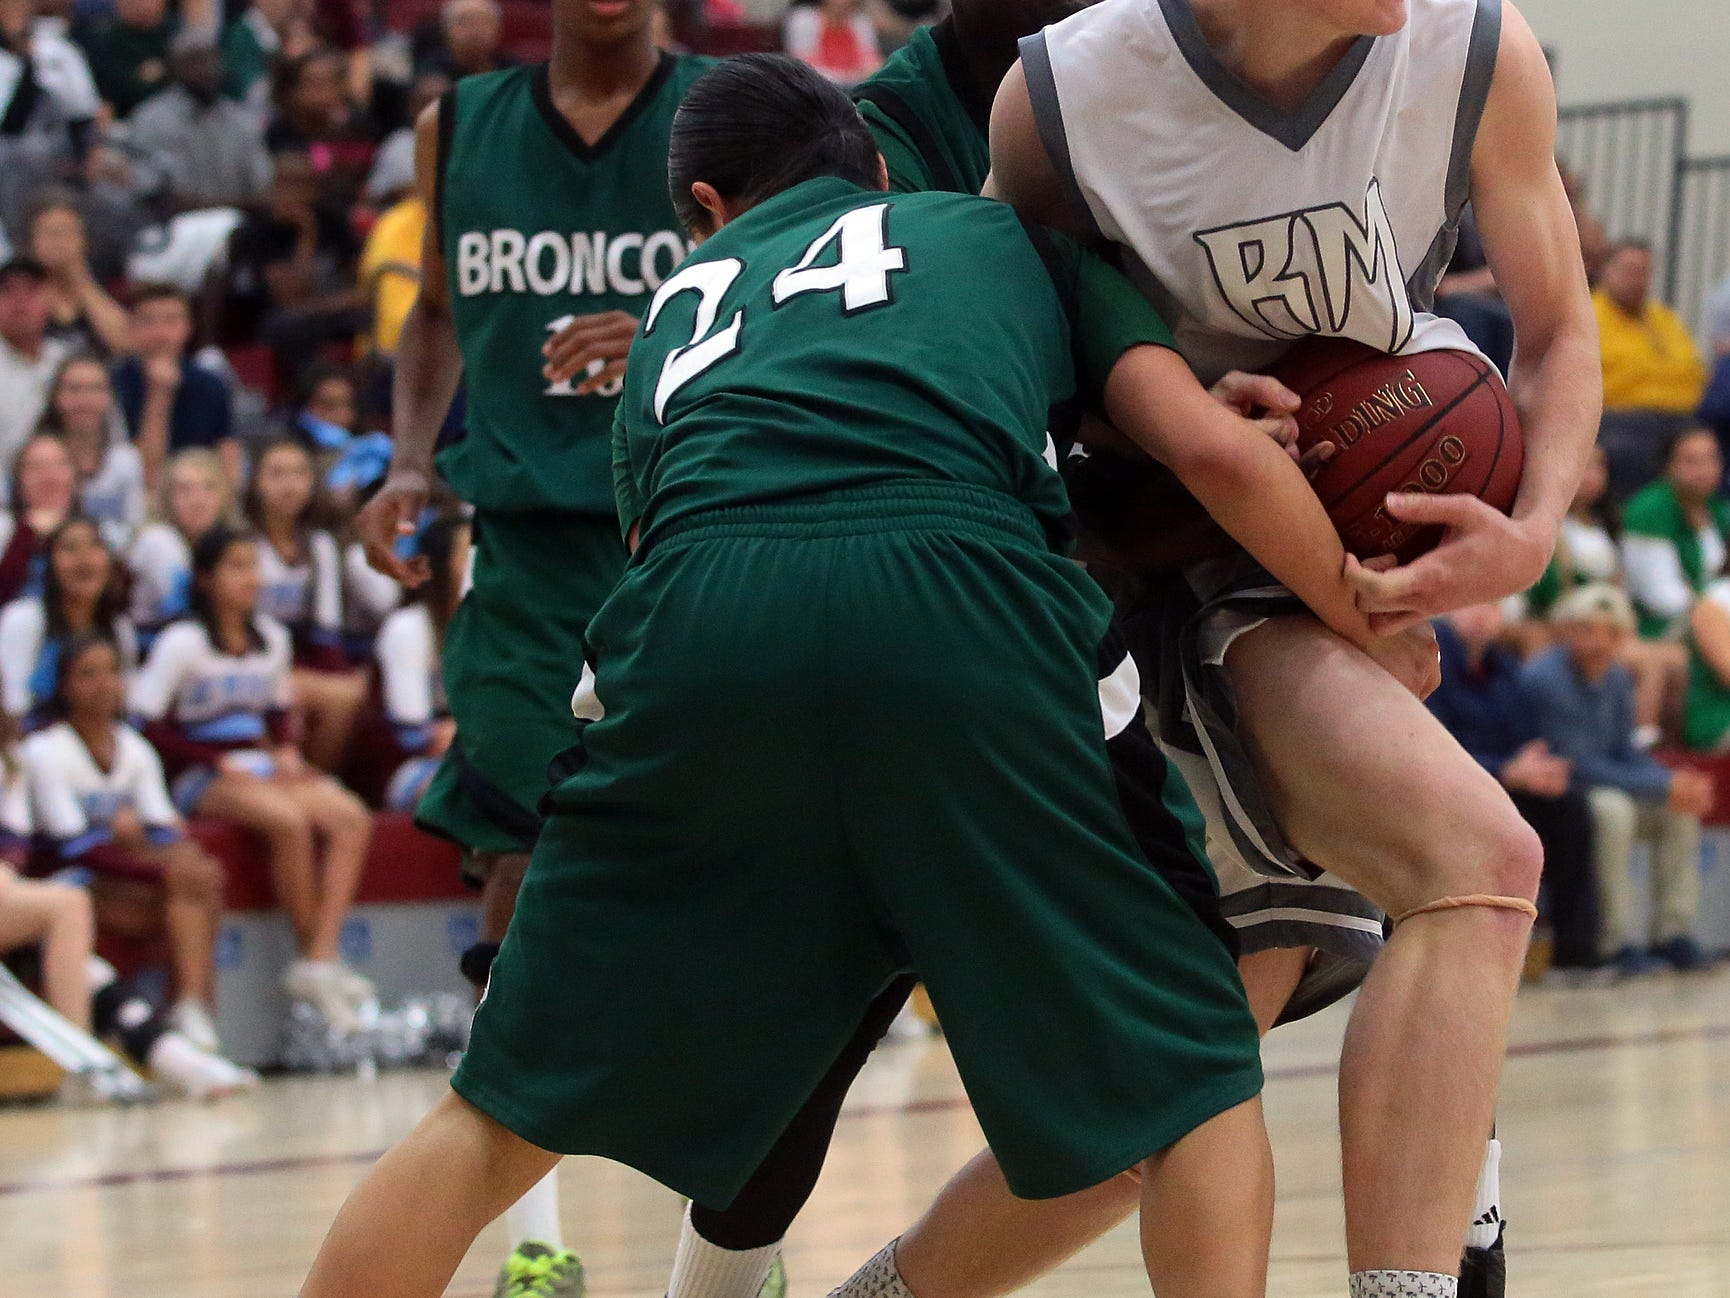 Rancho Mirage High School sophomore William Webster (44, white) fights for possession of the ball during the second half of the Rattlers' home playoff game on Wednesday, February 18, 2015 against Banning.